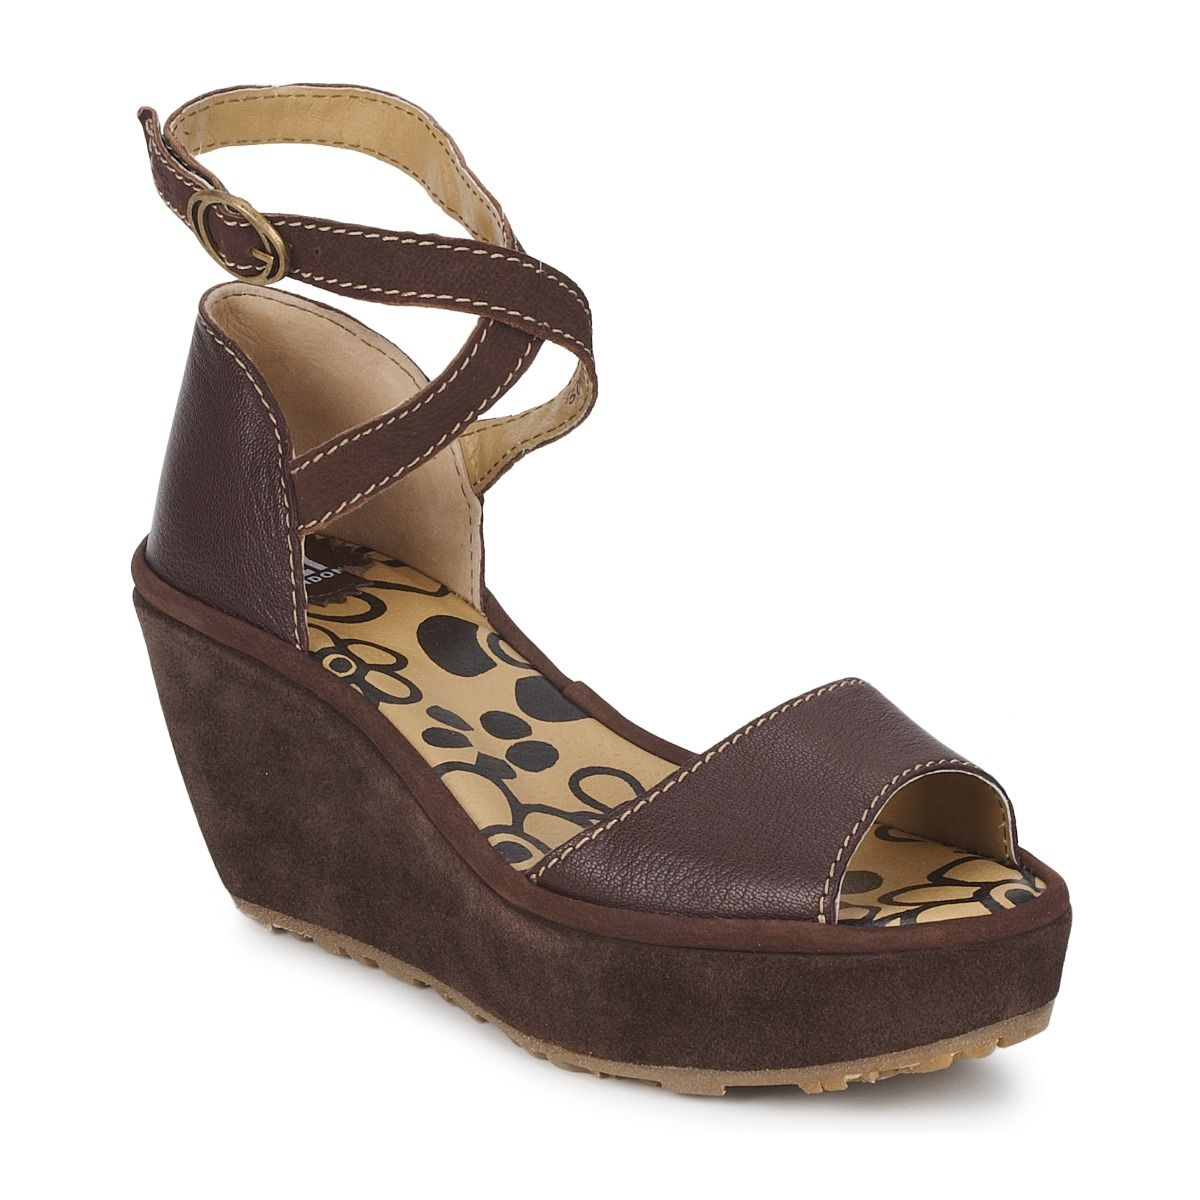 Fly London boots qvc, Women Sandals Fly